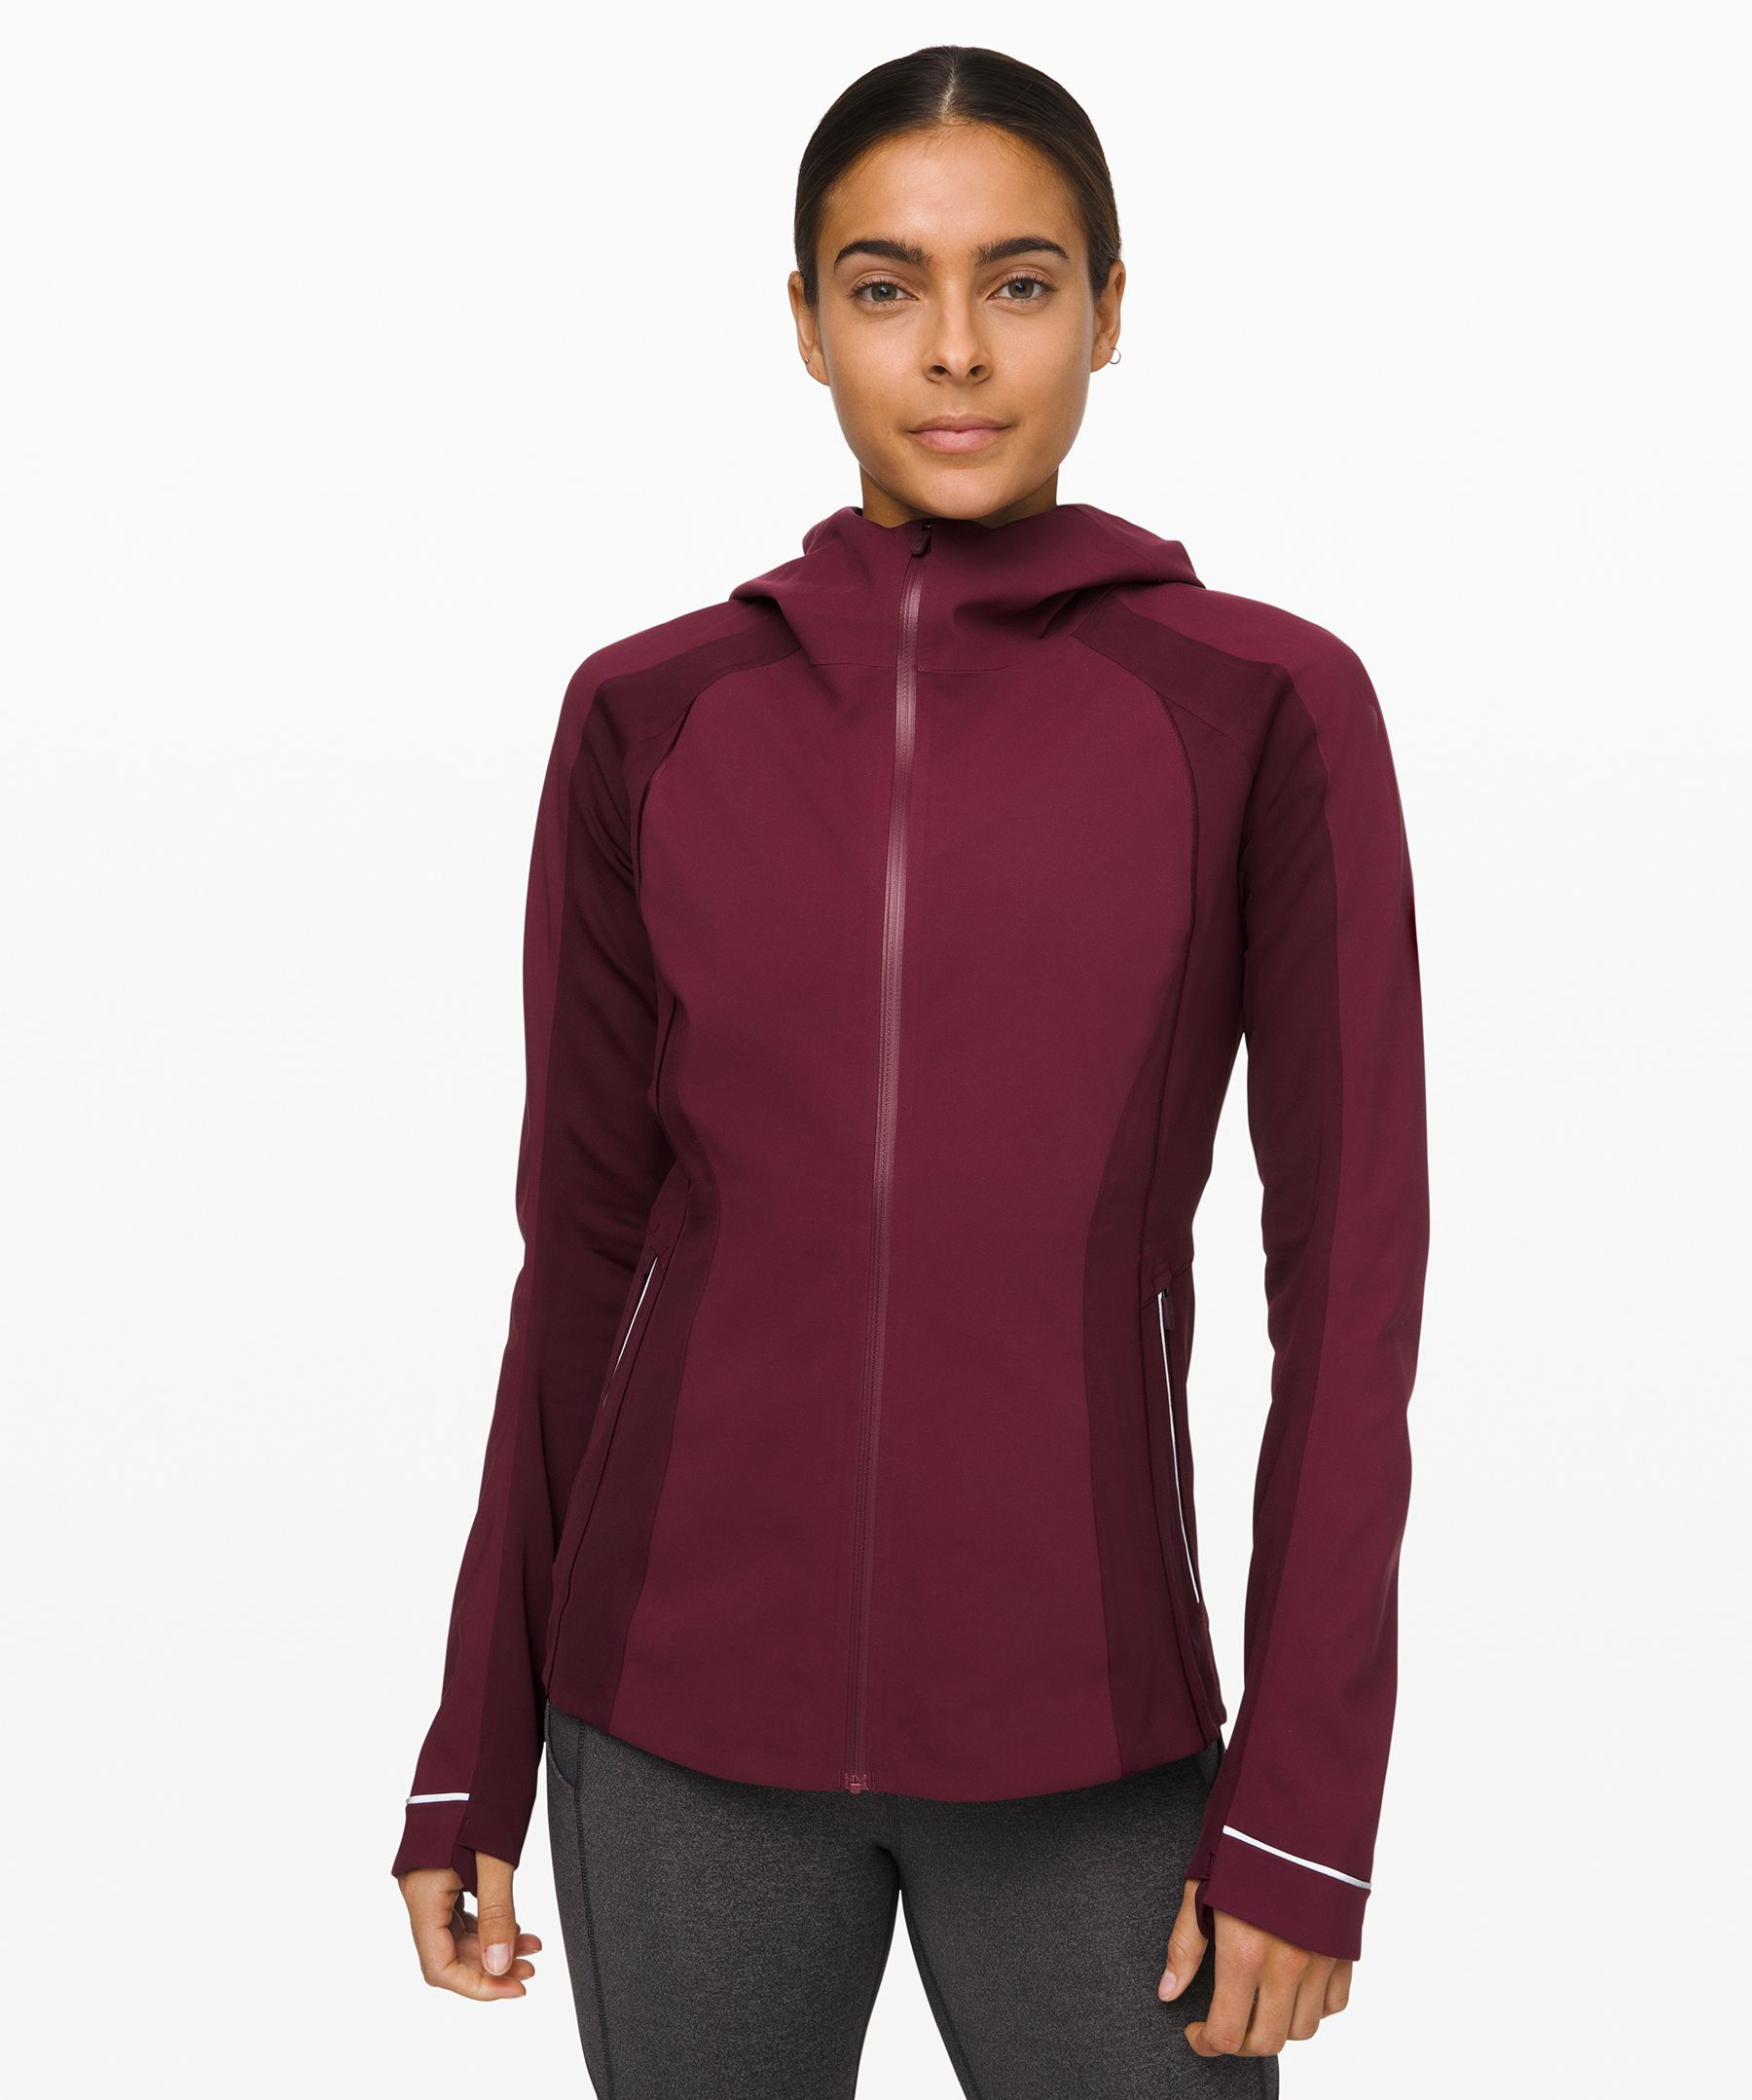 This sleek, technical jacket was engineered to keep you warm and comfortable during cold-weather runs. Water-repellent softshell fabric keeps you dry, while stretchy Fleece fabric is strategically placed in spots requiring high mobility.